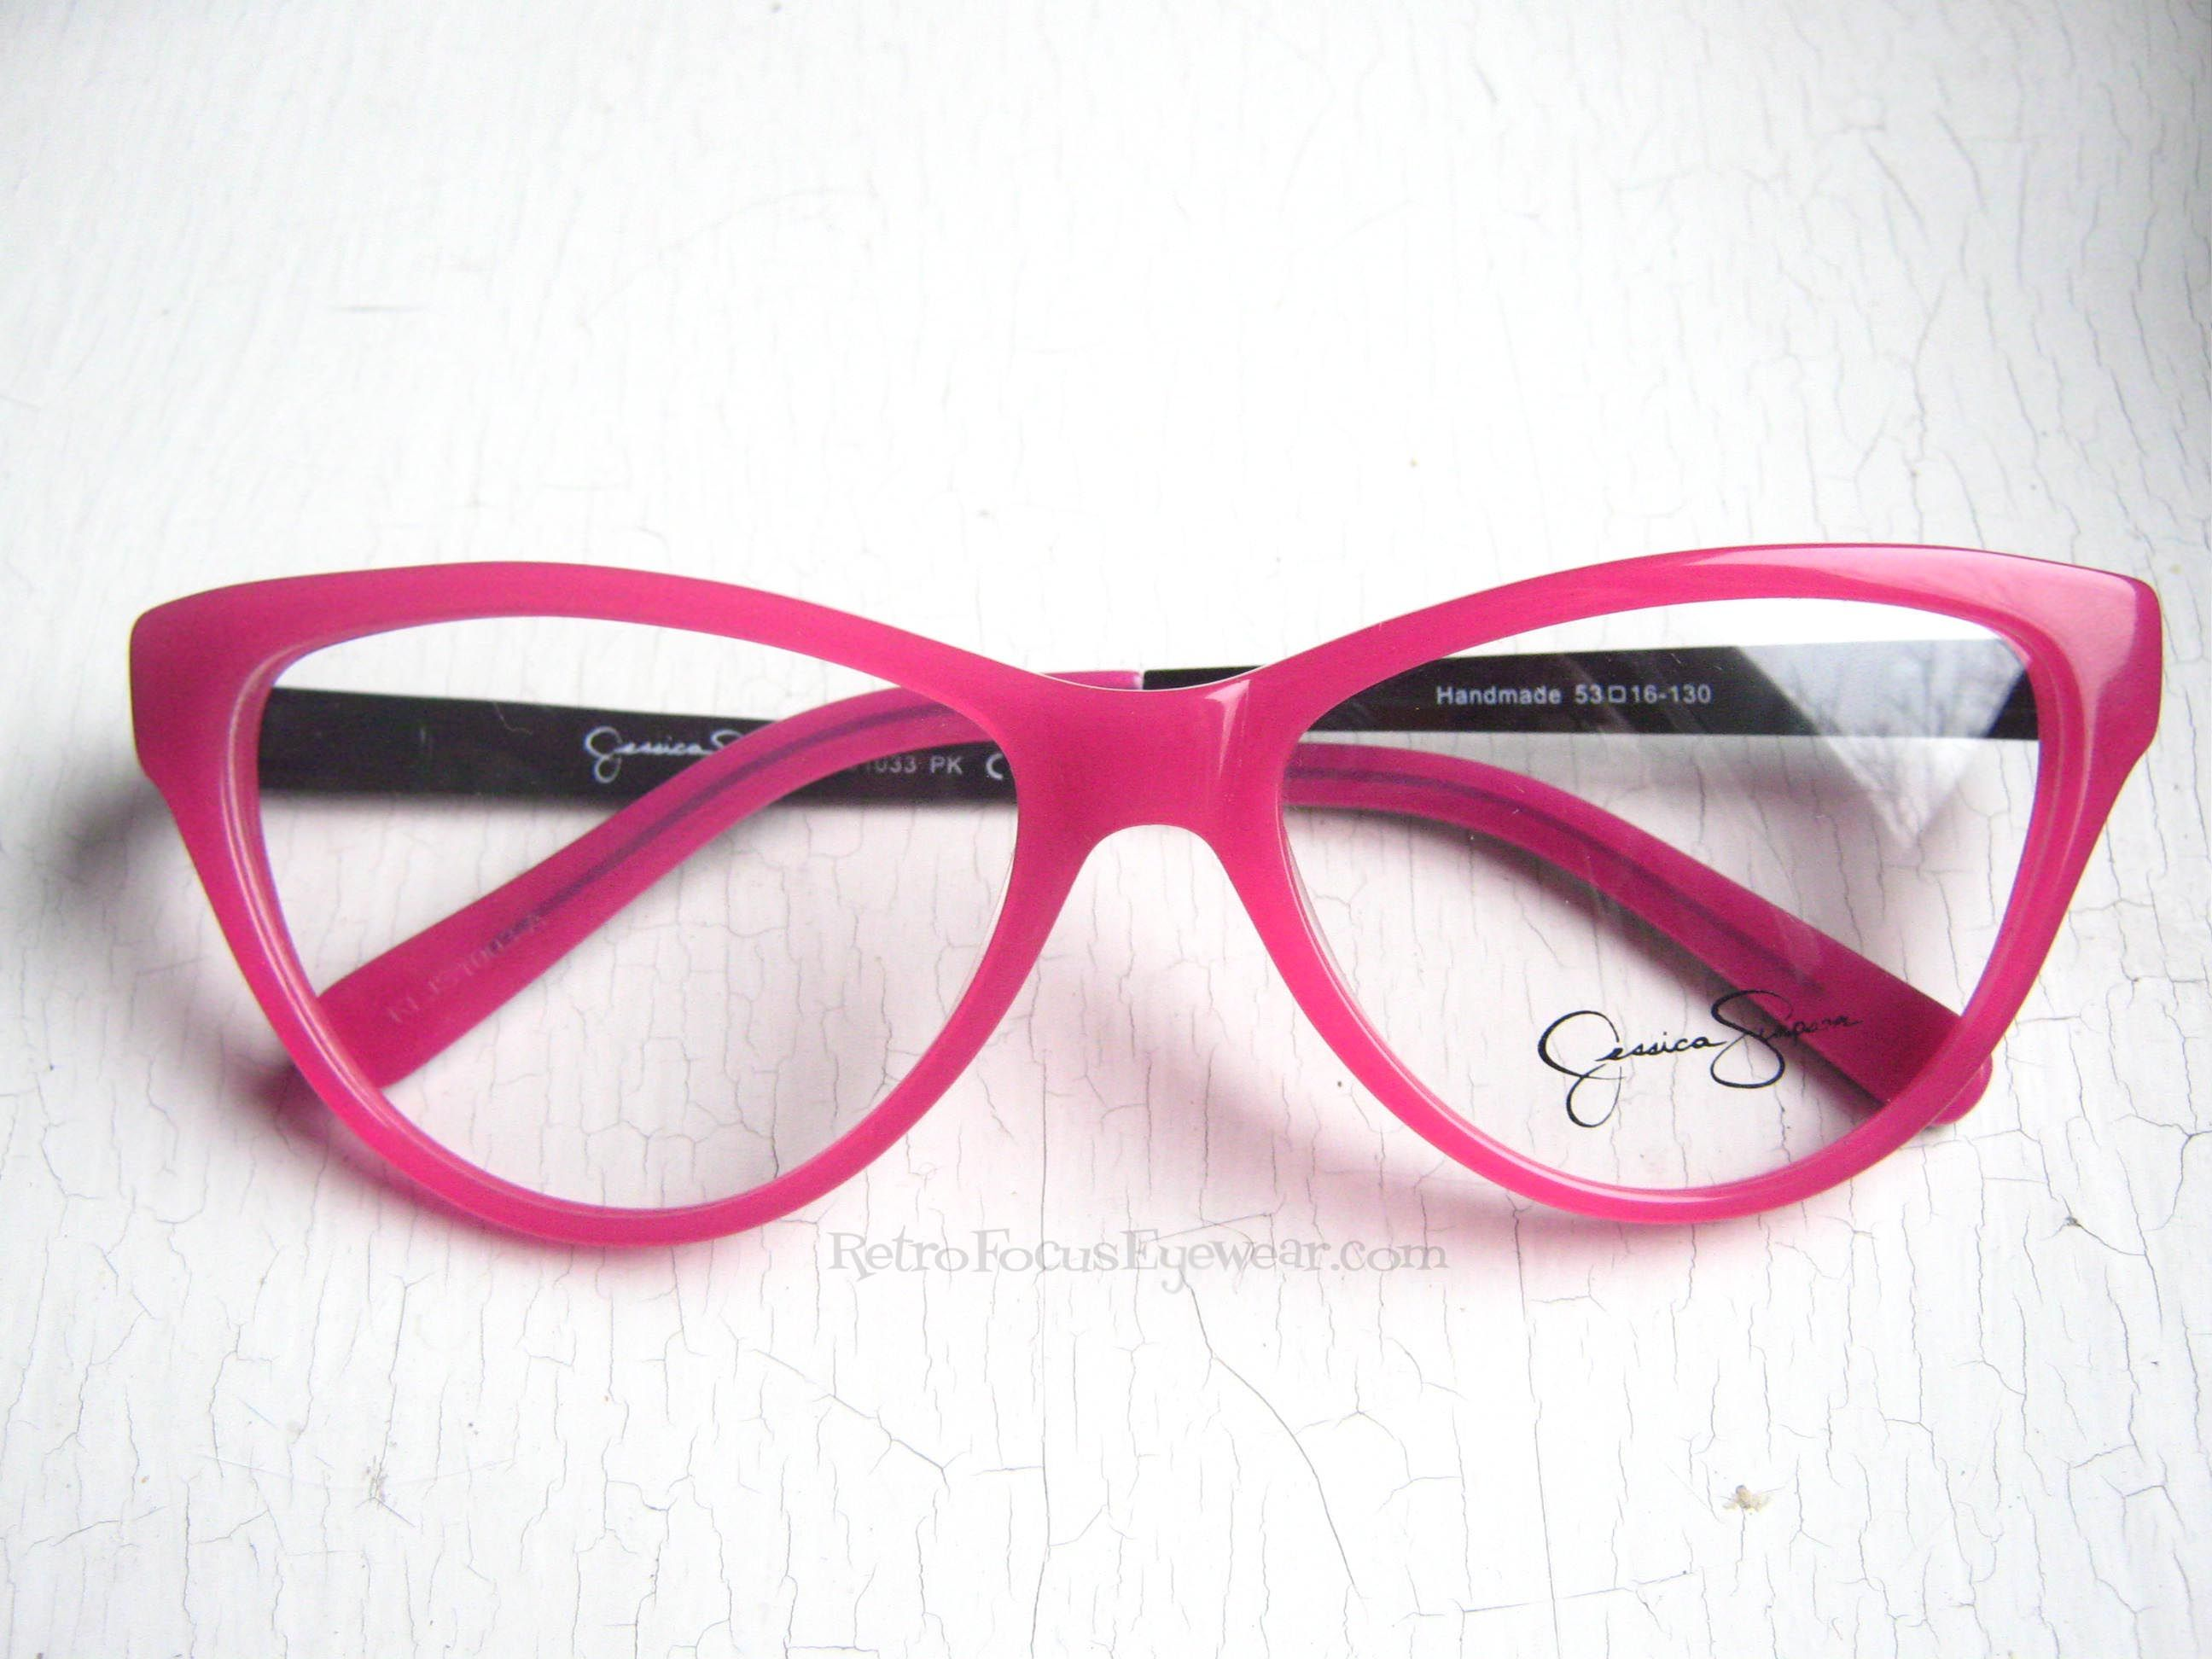 4e9985e4435 Jessica Simpson Pink Oversized Eyeglass Frames. Gorgeous cat eye eyeglass  frames with black pink leopard temples.